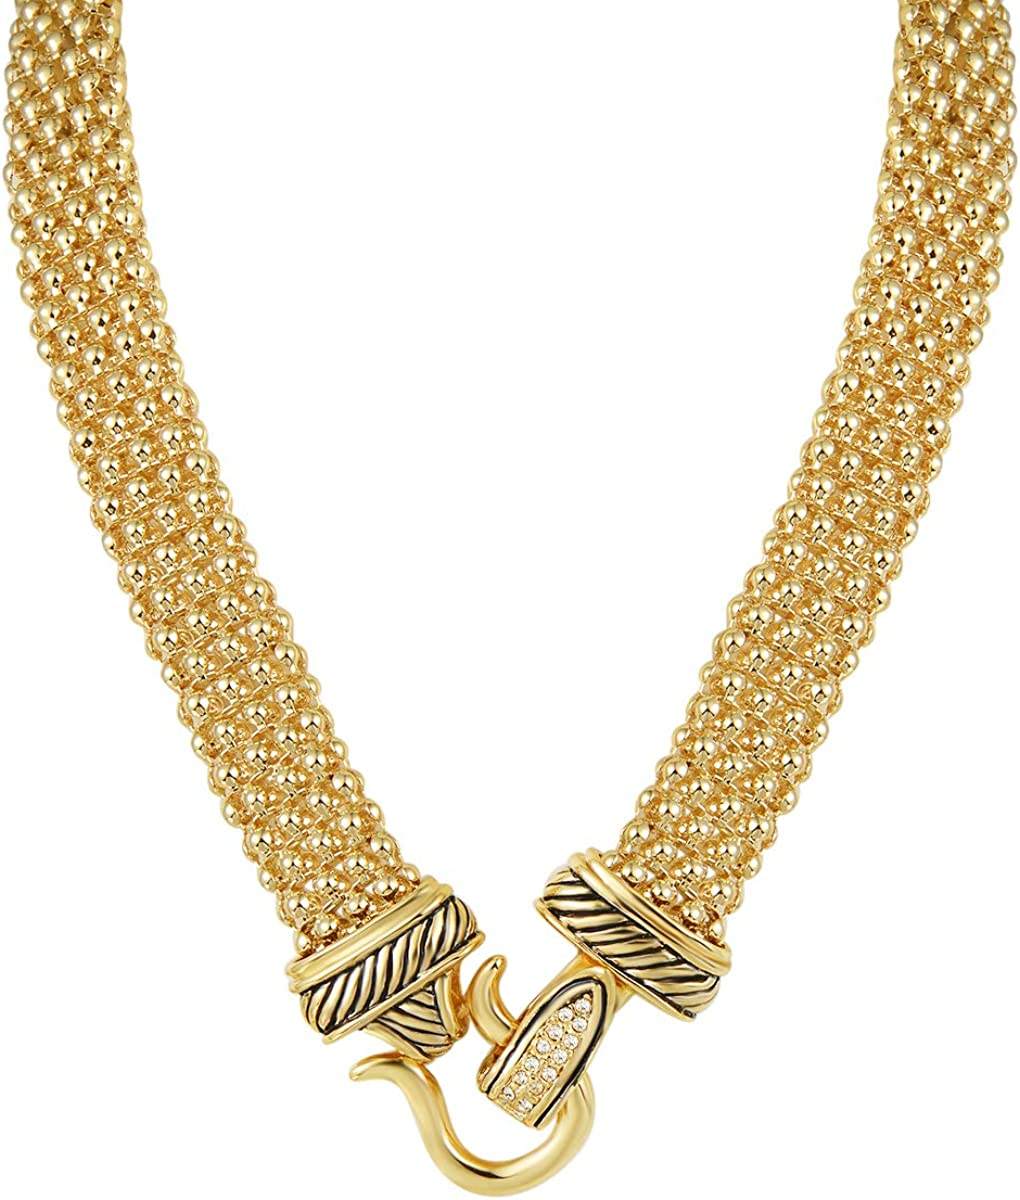 Austin Mall UNY Popular shop is the lowest price challenge Short Necklace 48cm Popcorn Claps Classic Chain Magnetic Ele